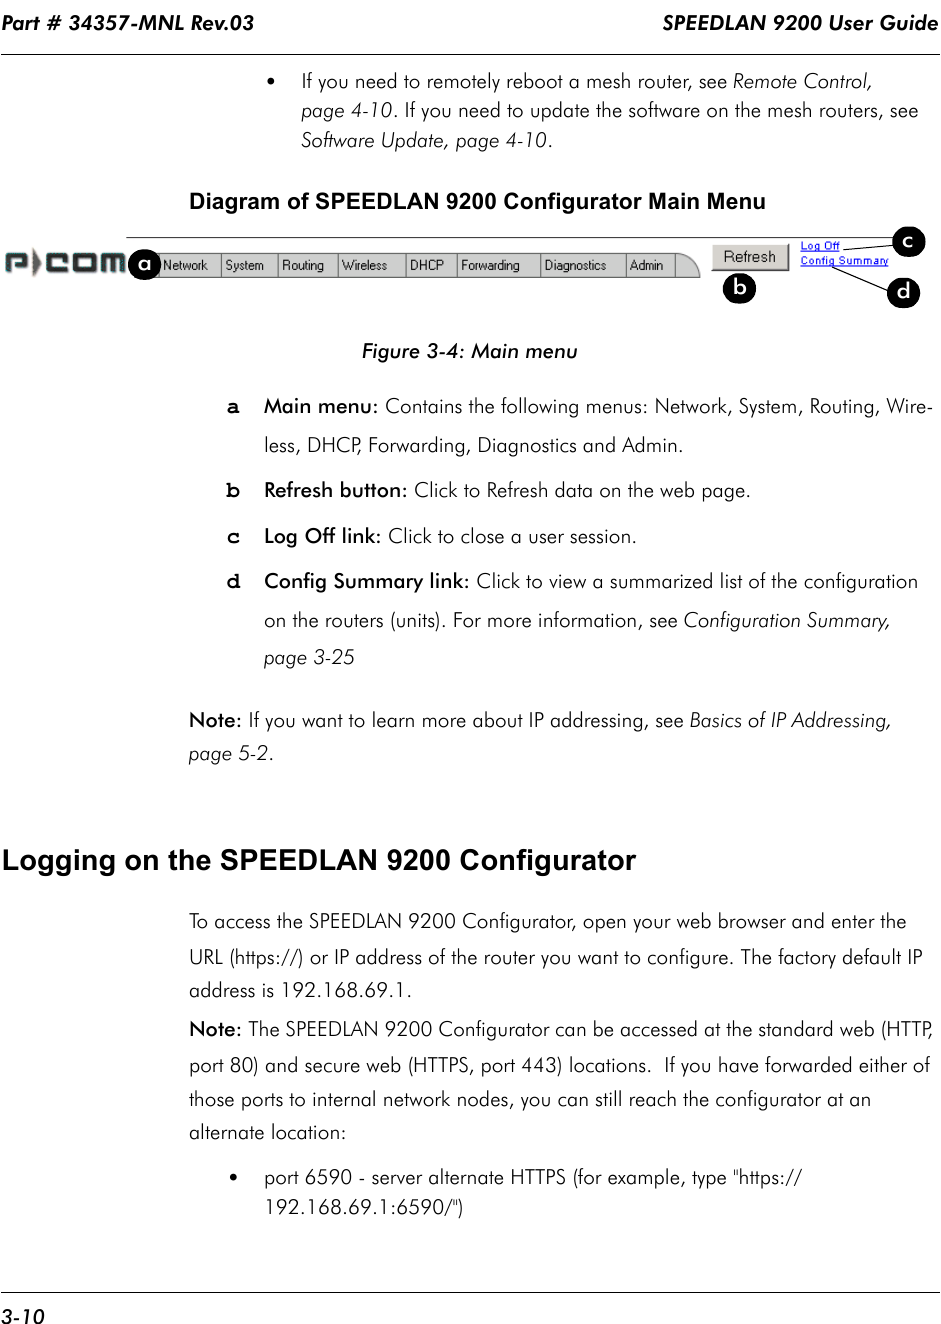 """Part # 34357-MNL Rev.03                                                                   SPEEDLAN 9200 User Guide 3-10•If you need to remotely reboot a mesh router, see Remote Control, page 4-10. If you need to update the software on the mesh routers, see Software Update, page 4-10. Diagram of SPEEDLAN 9200 Configurator Main MenuFigure 3-4: Main menua   Main menu: Contains the following menus: Network, System, Routing, Wire-less, DHCP, Forwarding, Diagnostics and Admin.bRefresh button: Click to Refresh data on the web page.cLog Off link: Click to close a user session.dConfig Summary link: Click to view a summarized list of the configuration on the routers (units). For more information, see Configuration Summary, page 3-25Note: If you want to learn more about IP addressing, see Basics of IP Addressing, page 5-2.Logging on the SPEEDLAN 9200 ConfiguratorTo access the SPEEDLAN 9200 Configurator, open your web browser and enter the URL (https://) or IP address of the router you want to configure. The factory default IP address is 192.168.69.1. Note: The SPEEDLAN 9200 Configurator can be accessed at the standard web (HTTP, port 80) and secure web (HTTPS, port 443) locations.  If you have forwarded either of those ports to internal network nodes, you can still reach the configurator at an alternate location: •port 6590 - server alternate HTTPS (for example, type """"https://192.168.69.1:6590/"""")dabcd"""